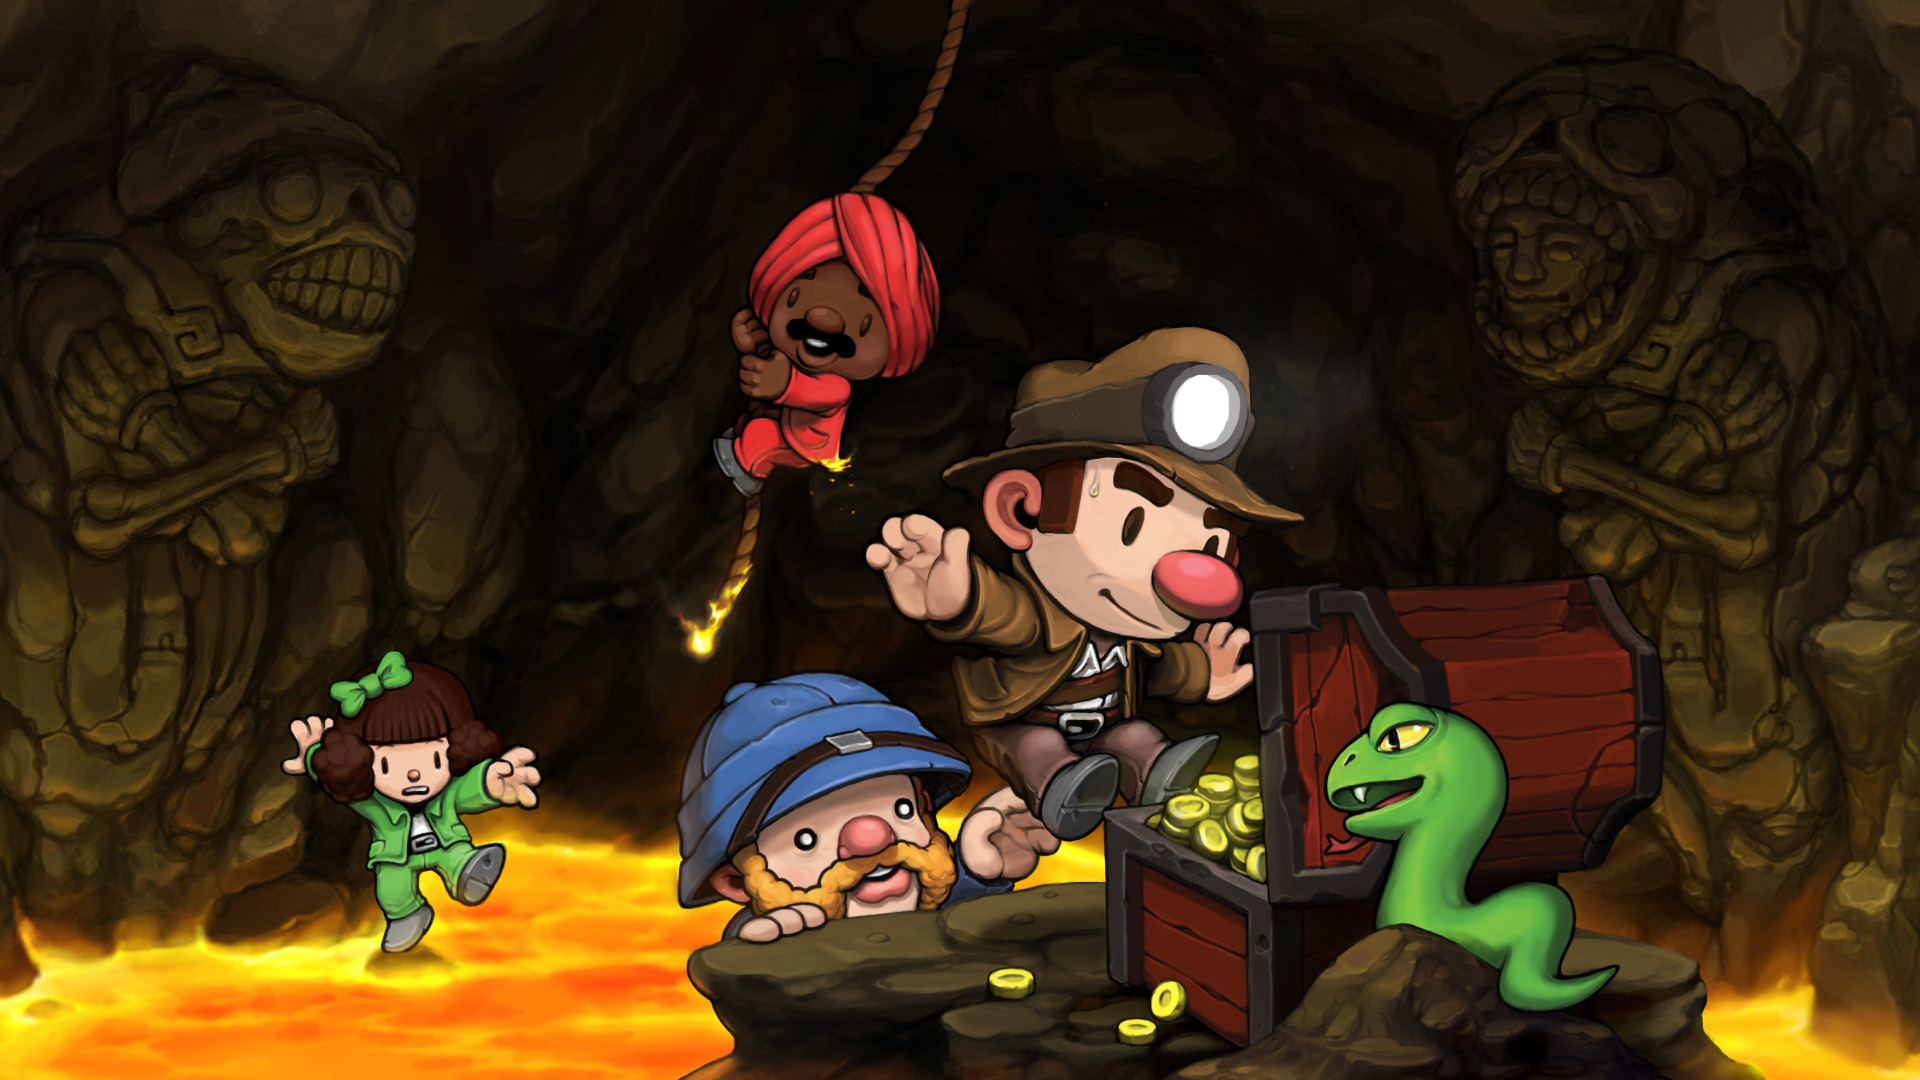 Spelunky Wallpaper